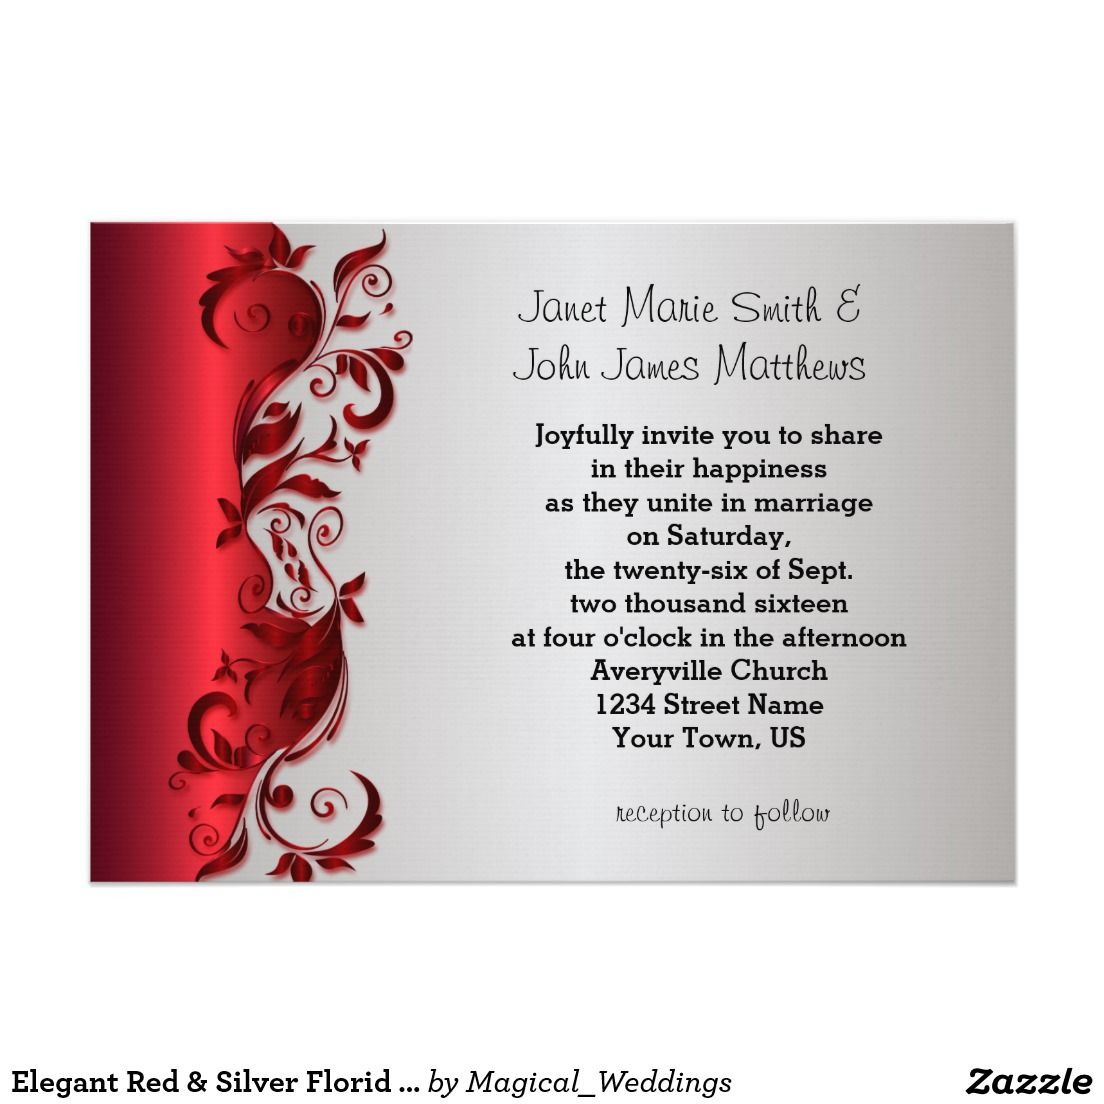 Elegant Red & Silver Florid Wedding Design Invitation | Pinterest ...